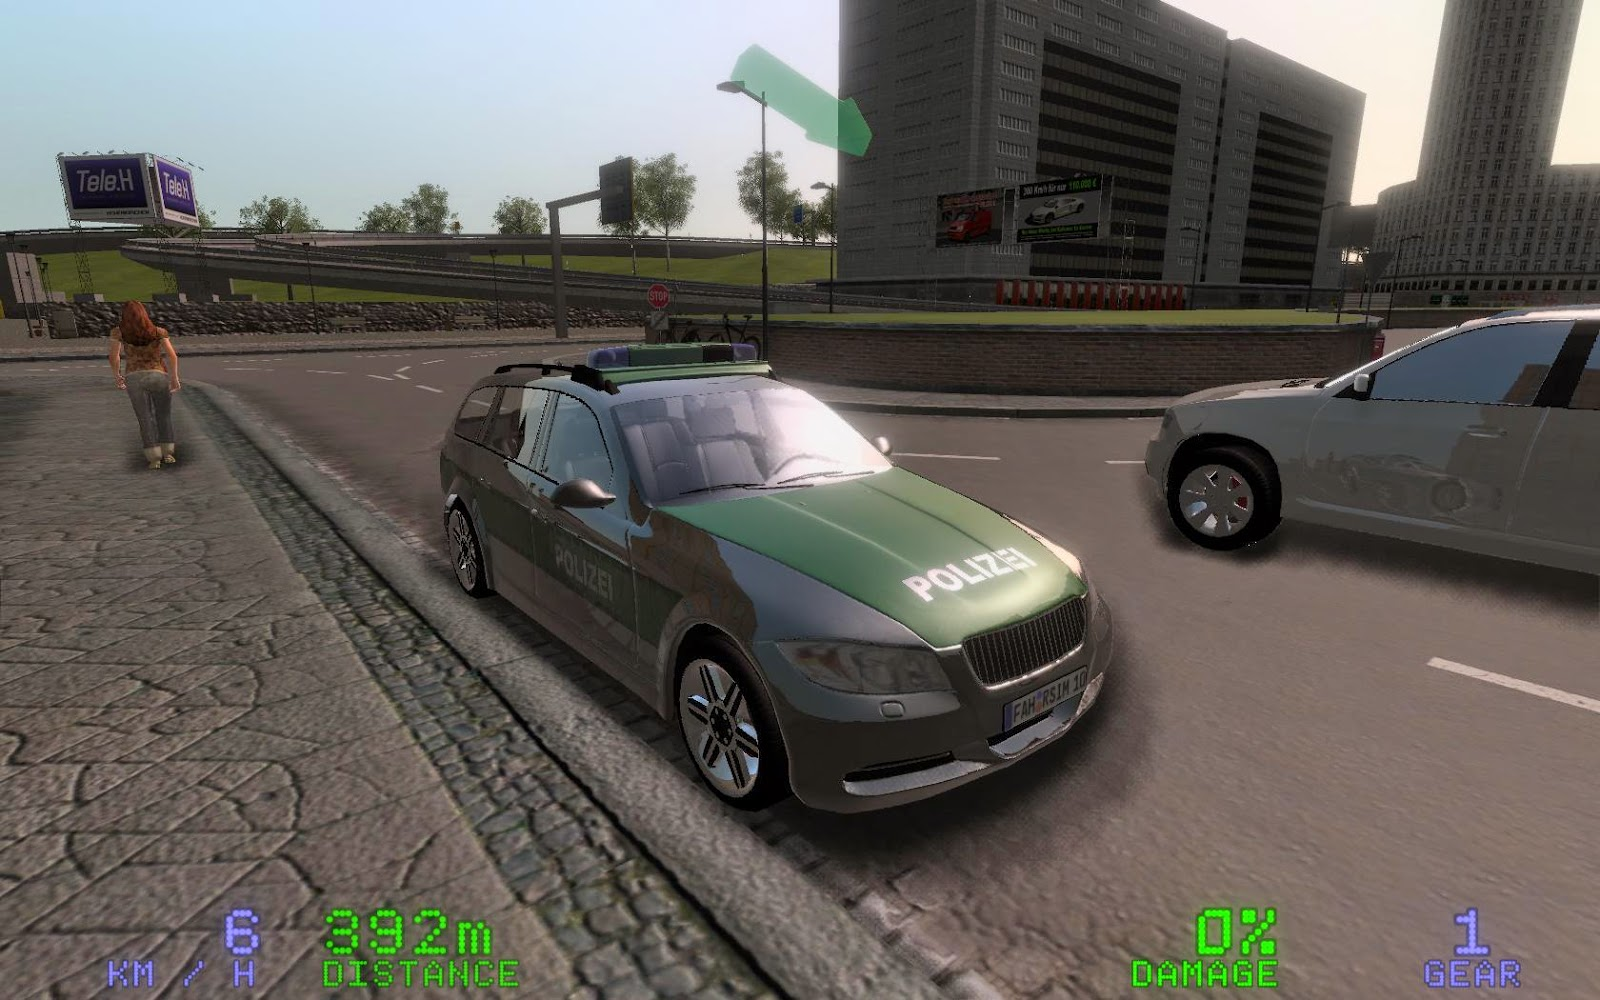 City Car Driving - Car Driving Simulator PC Game